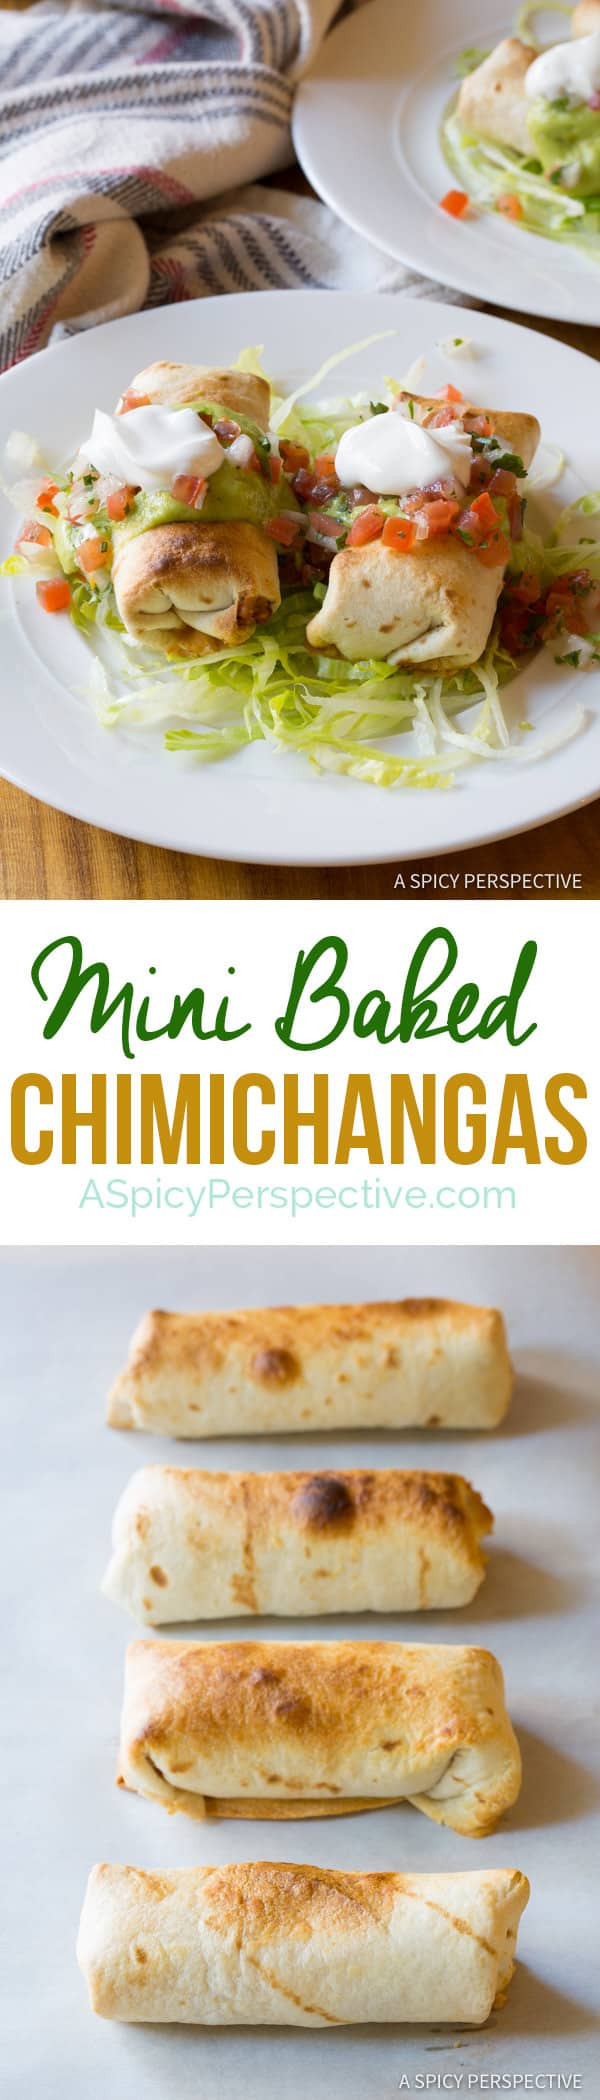 Lightened-Up Mini Baked Chimichanga Recipe | ASpicyPerspective.com